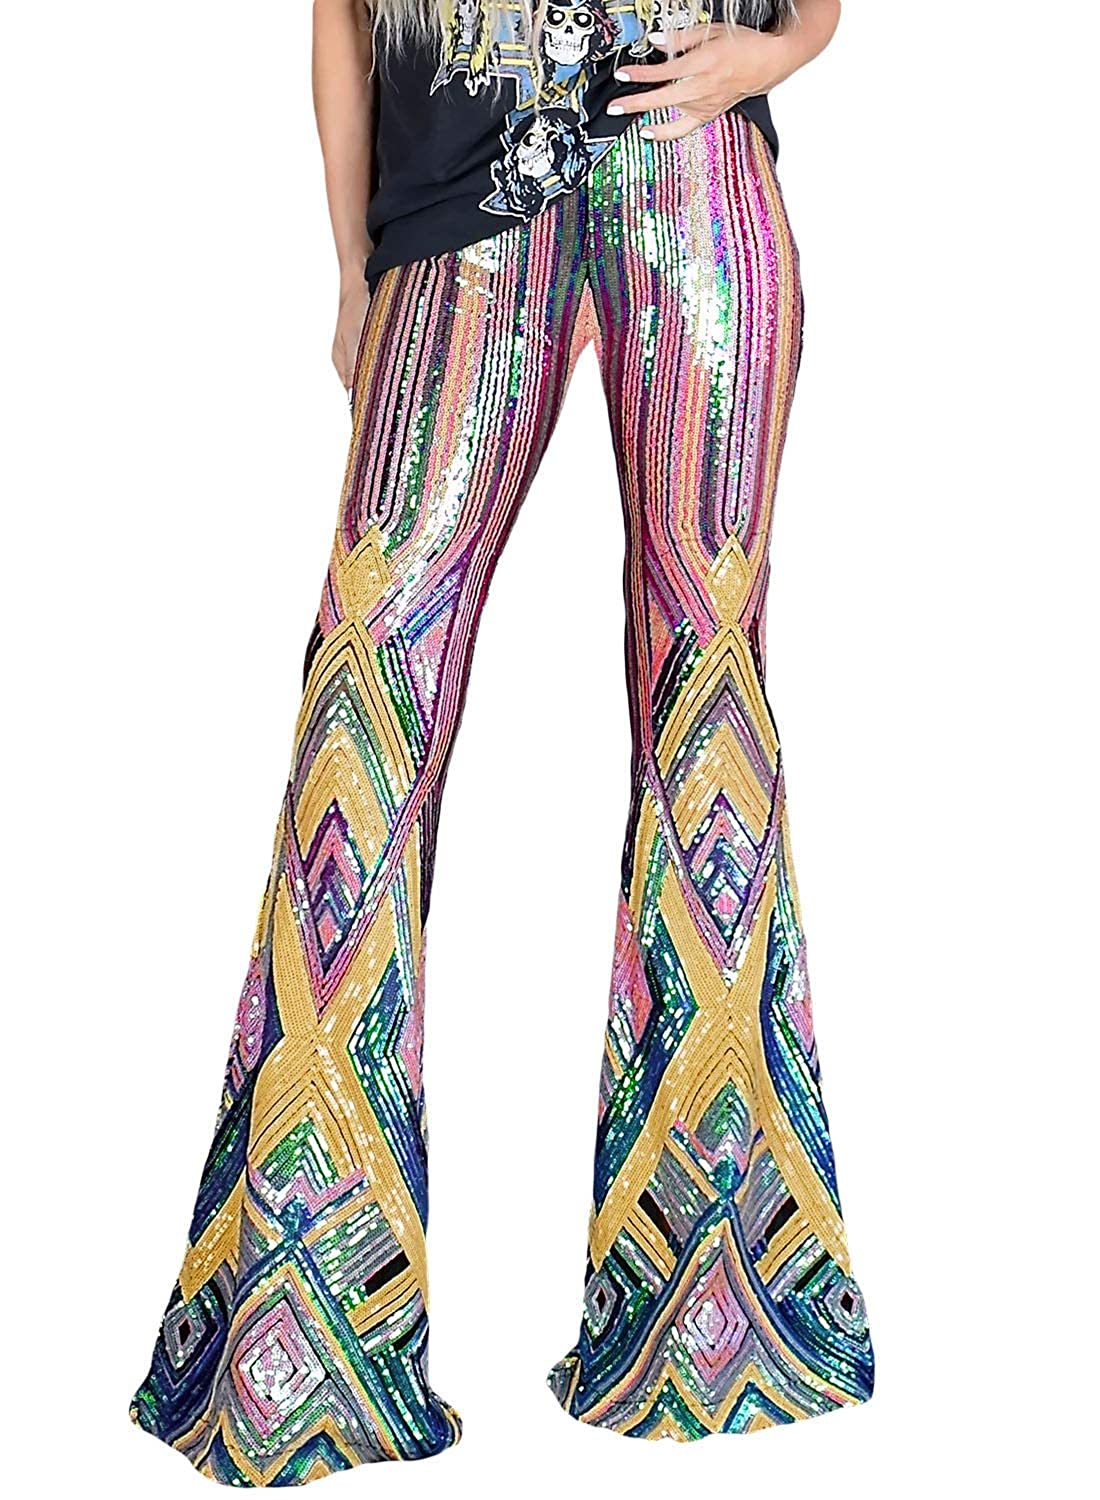 Azokoe Womens Fashion Sequin Flared Trousers High Waisted Casual Loose//Skinny Glitter Overalls Legging Maxi Pants